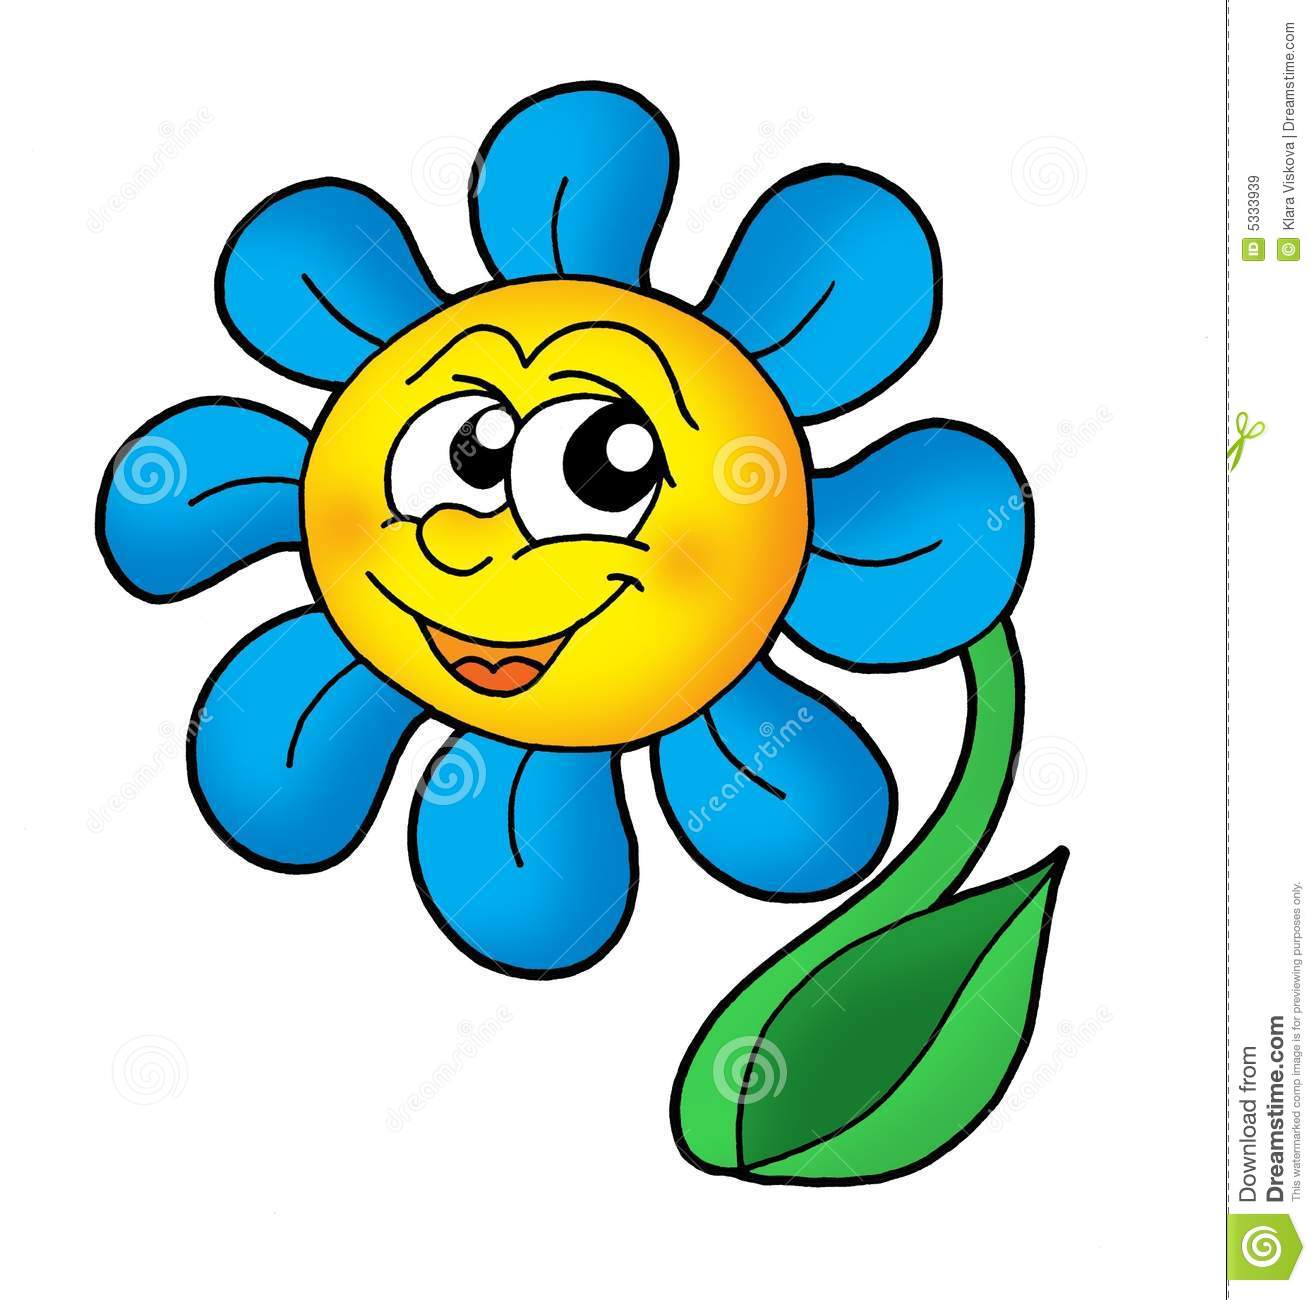 Smiling Flower Royalty Free Stock Images.